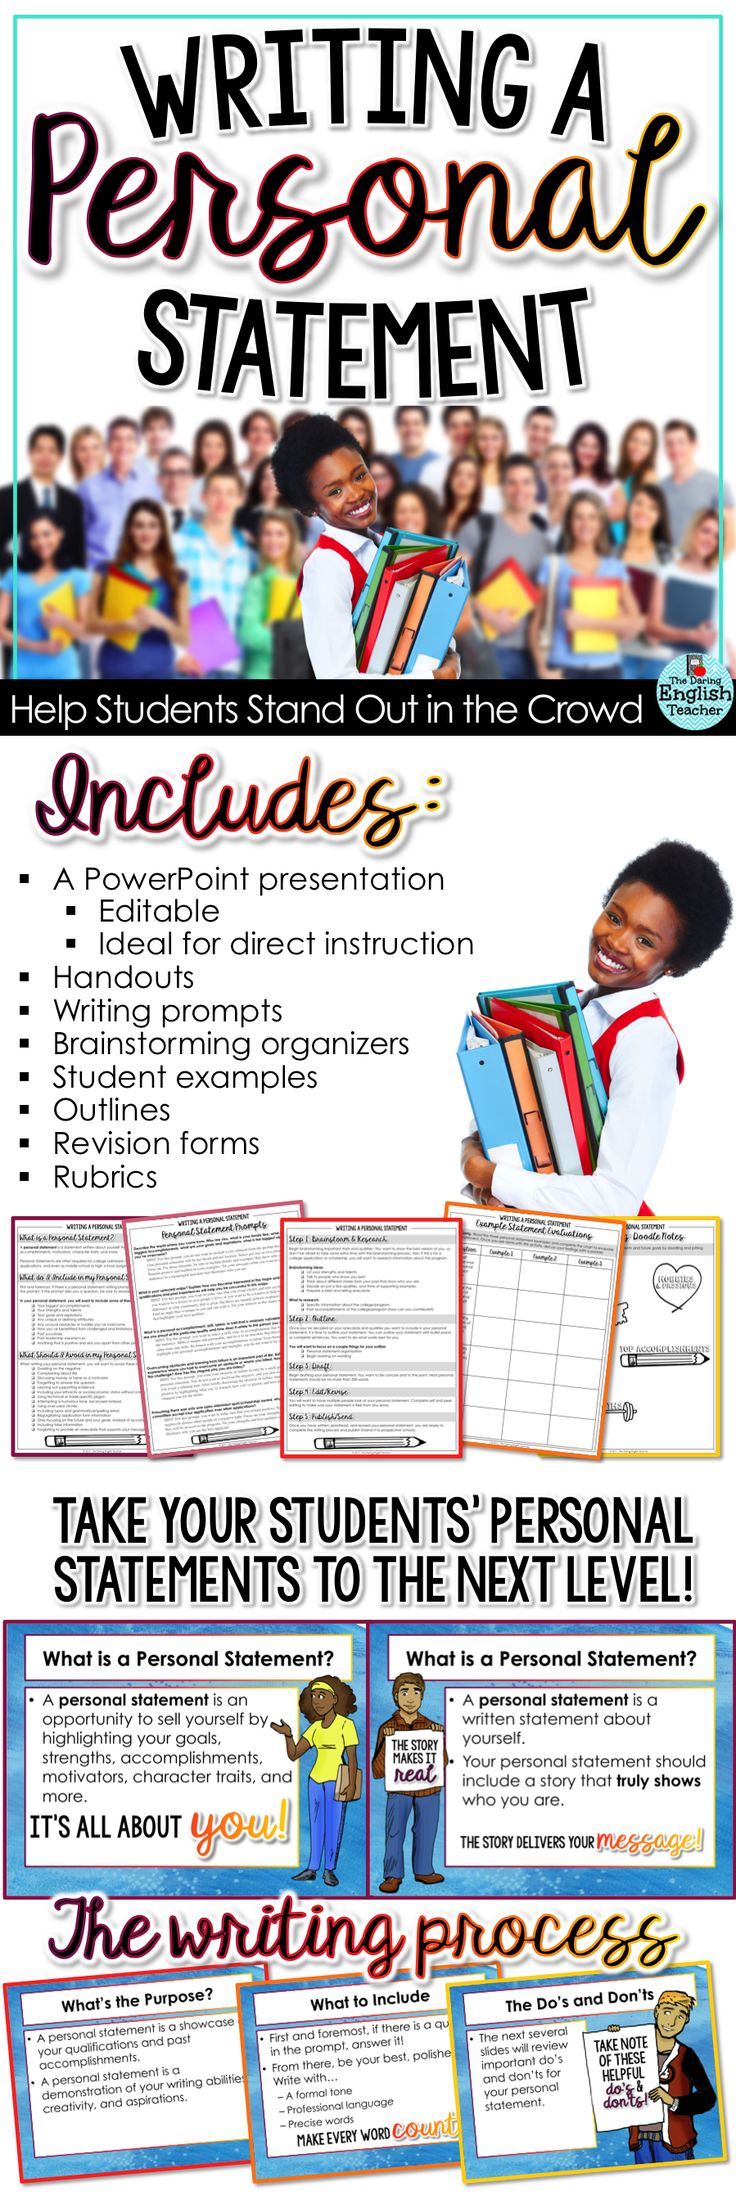 writing prompts for december A large list of creative writing prompts, ideas, lists, and creative writing resources for elementary school students and teachers.